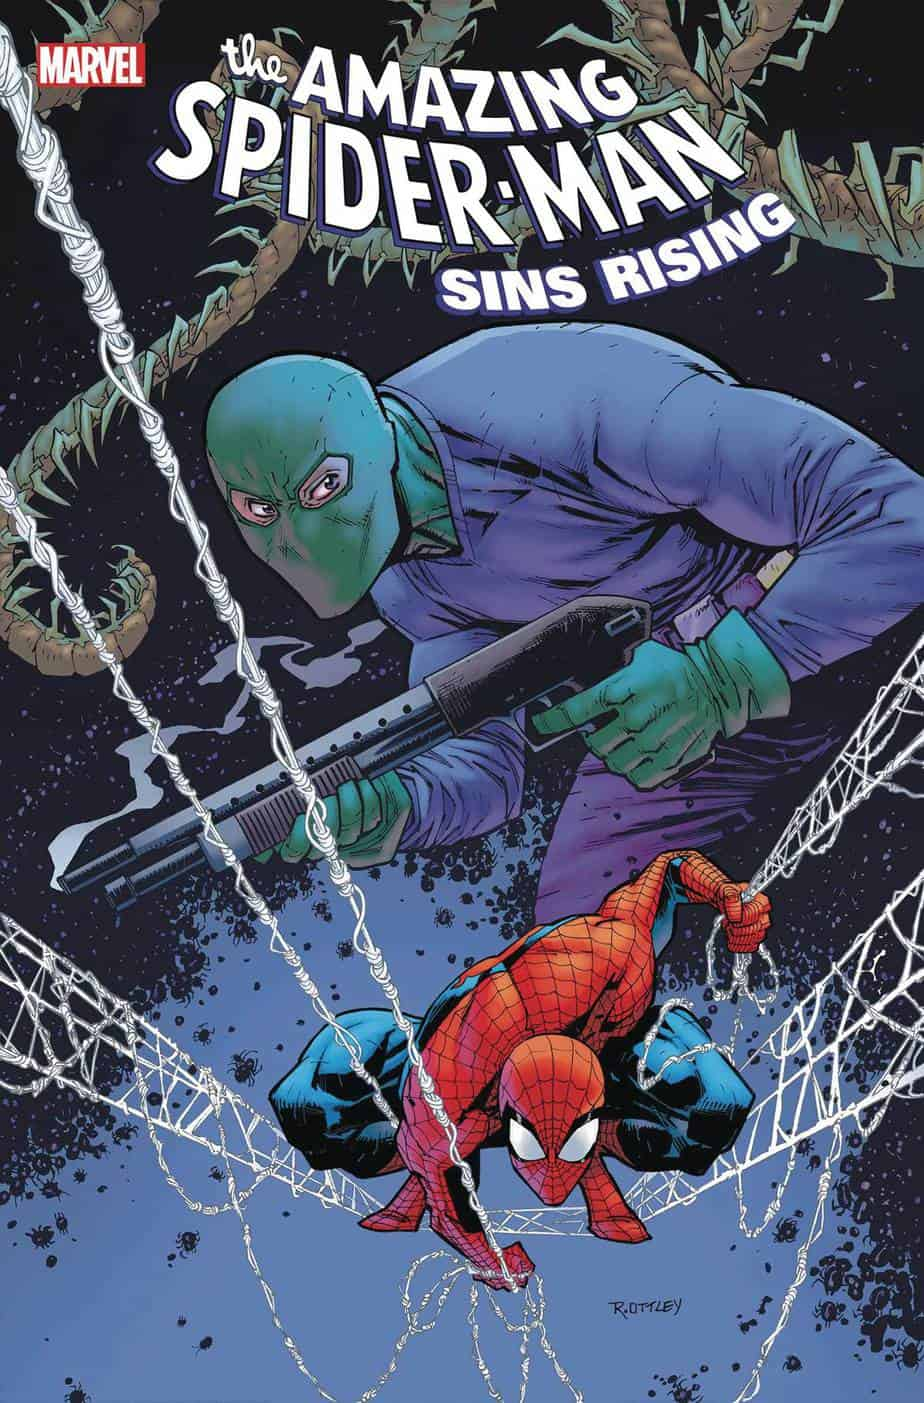 AMAZING SPIDER-MAN: Sins Rising Prelude #1 - Cover A